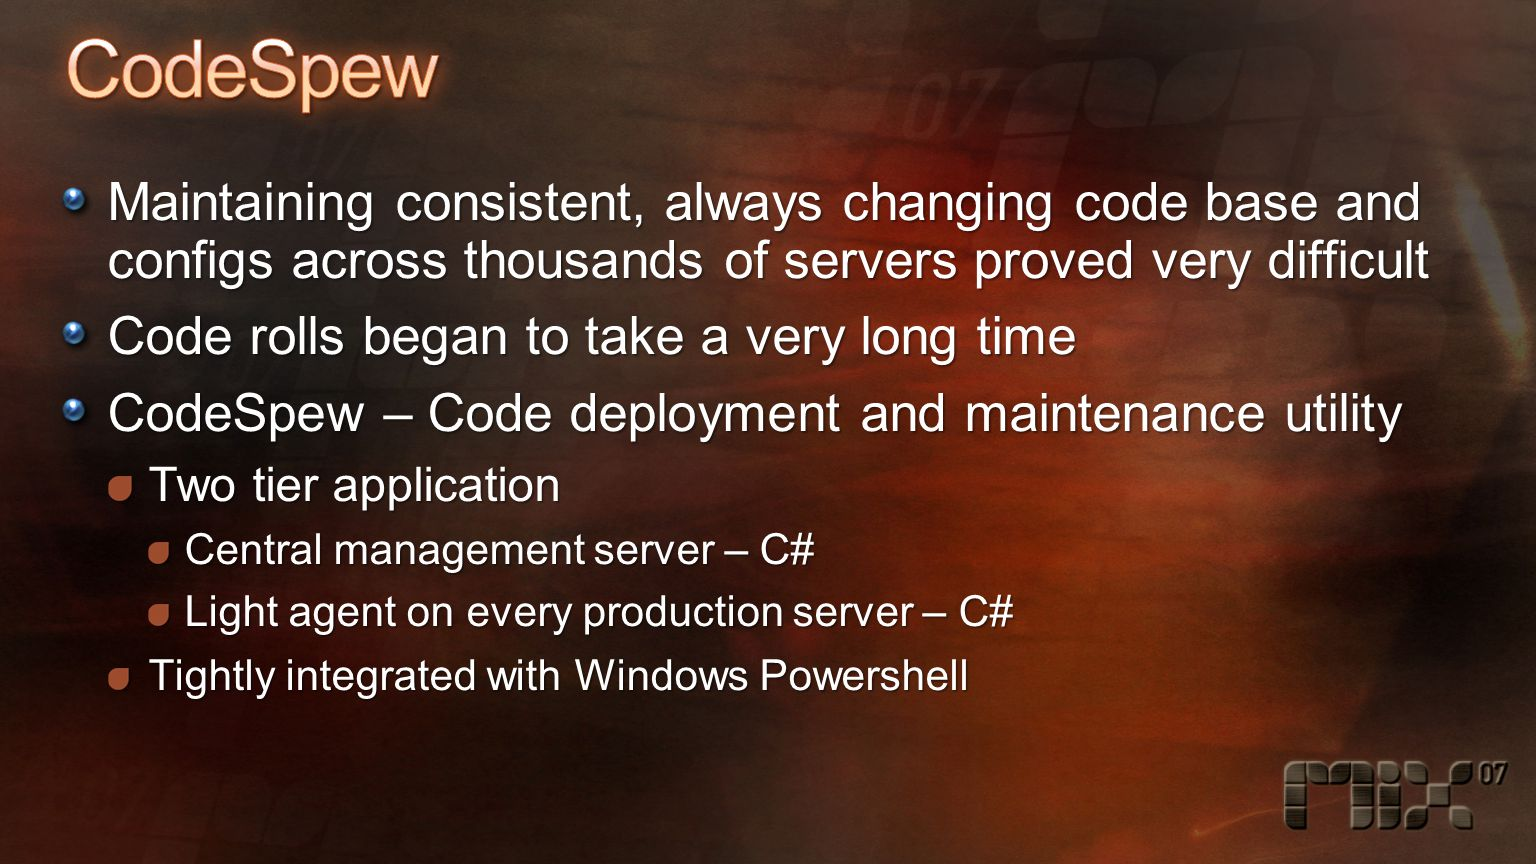 Maintaining consistent, always changing code base and configs across thousands of servers proved very difficult Code rolls began to take a very long time CodeSpew – Code deployment and maintenance utility Two tier application Central management server – C# Light agent on every production server – C# Tightly integrated with Windows Powershell